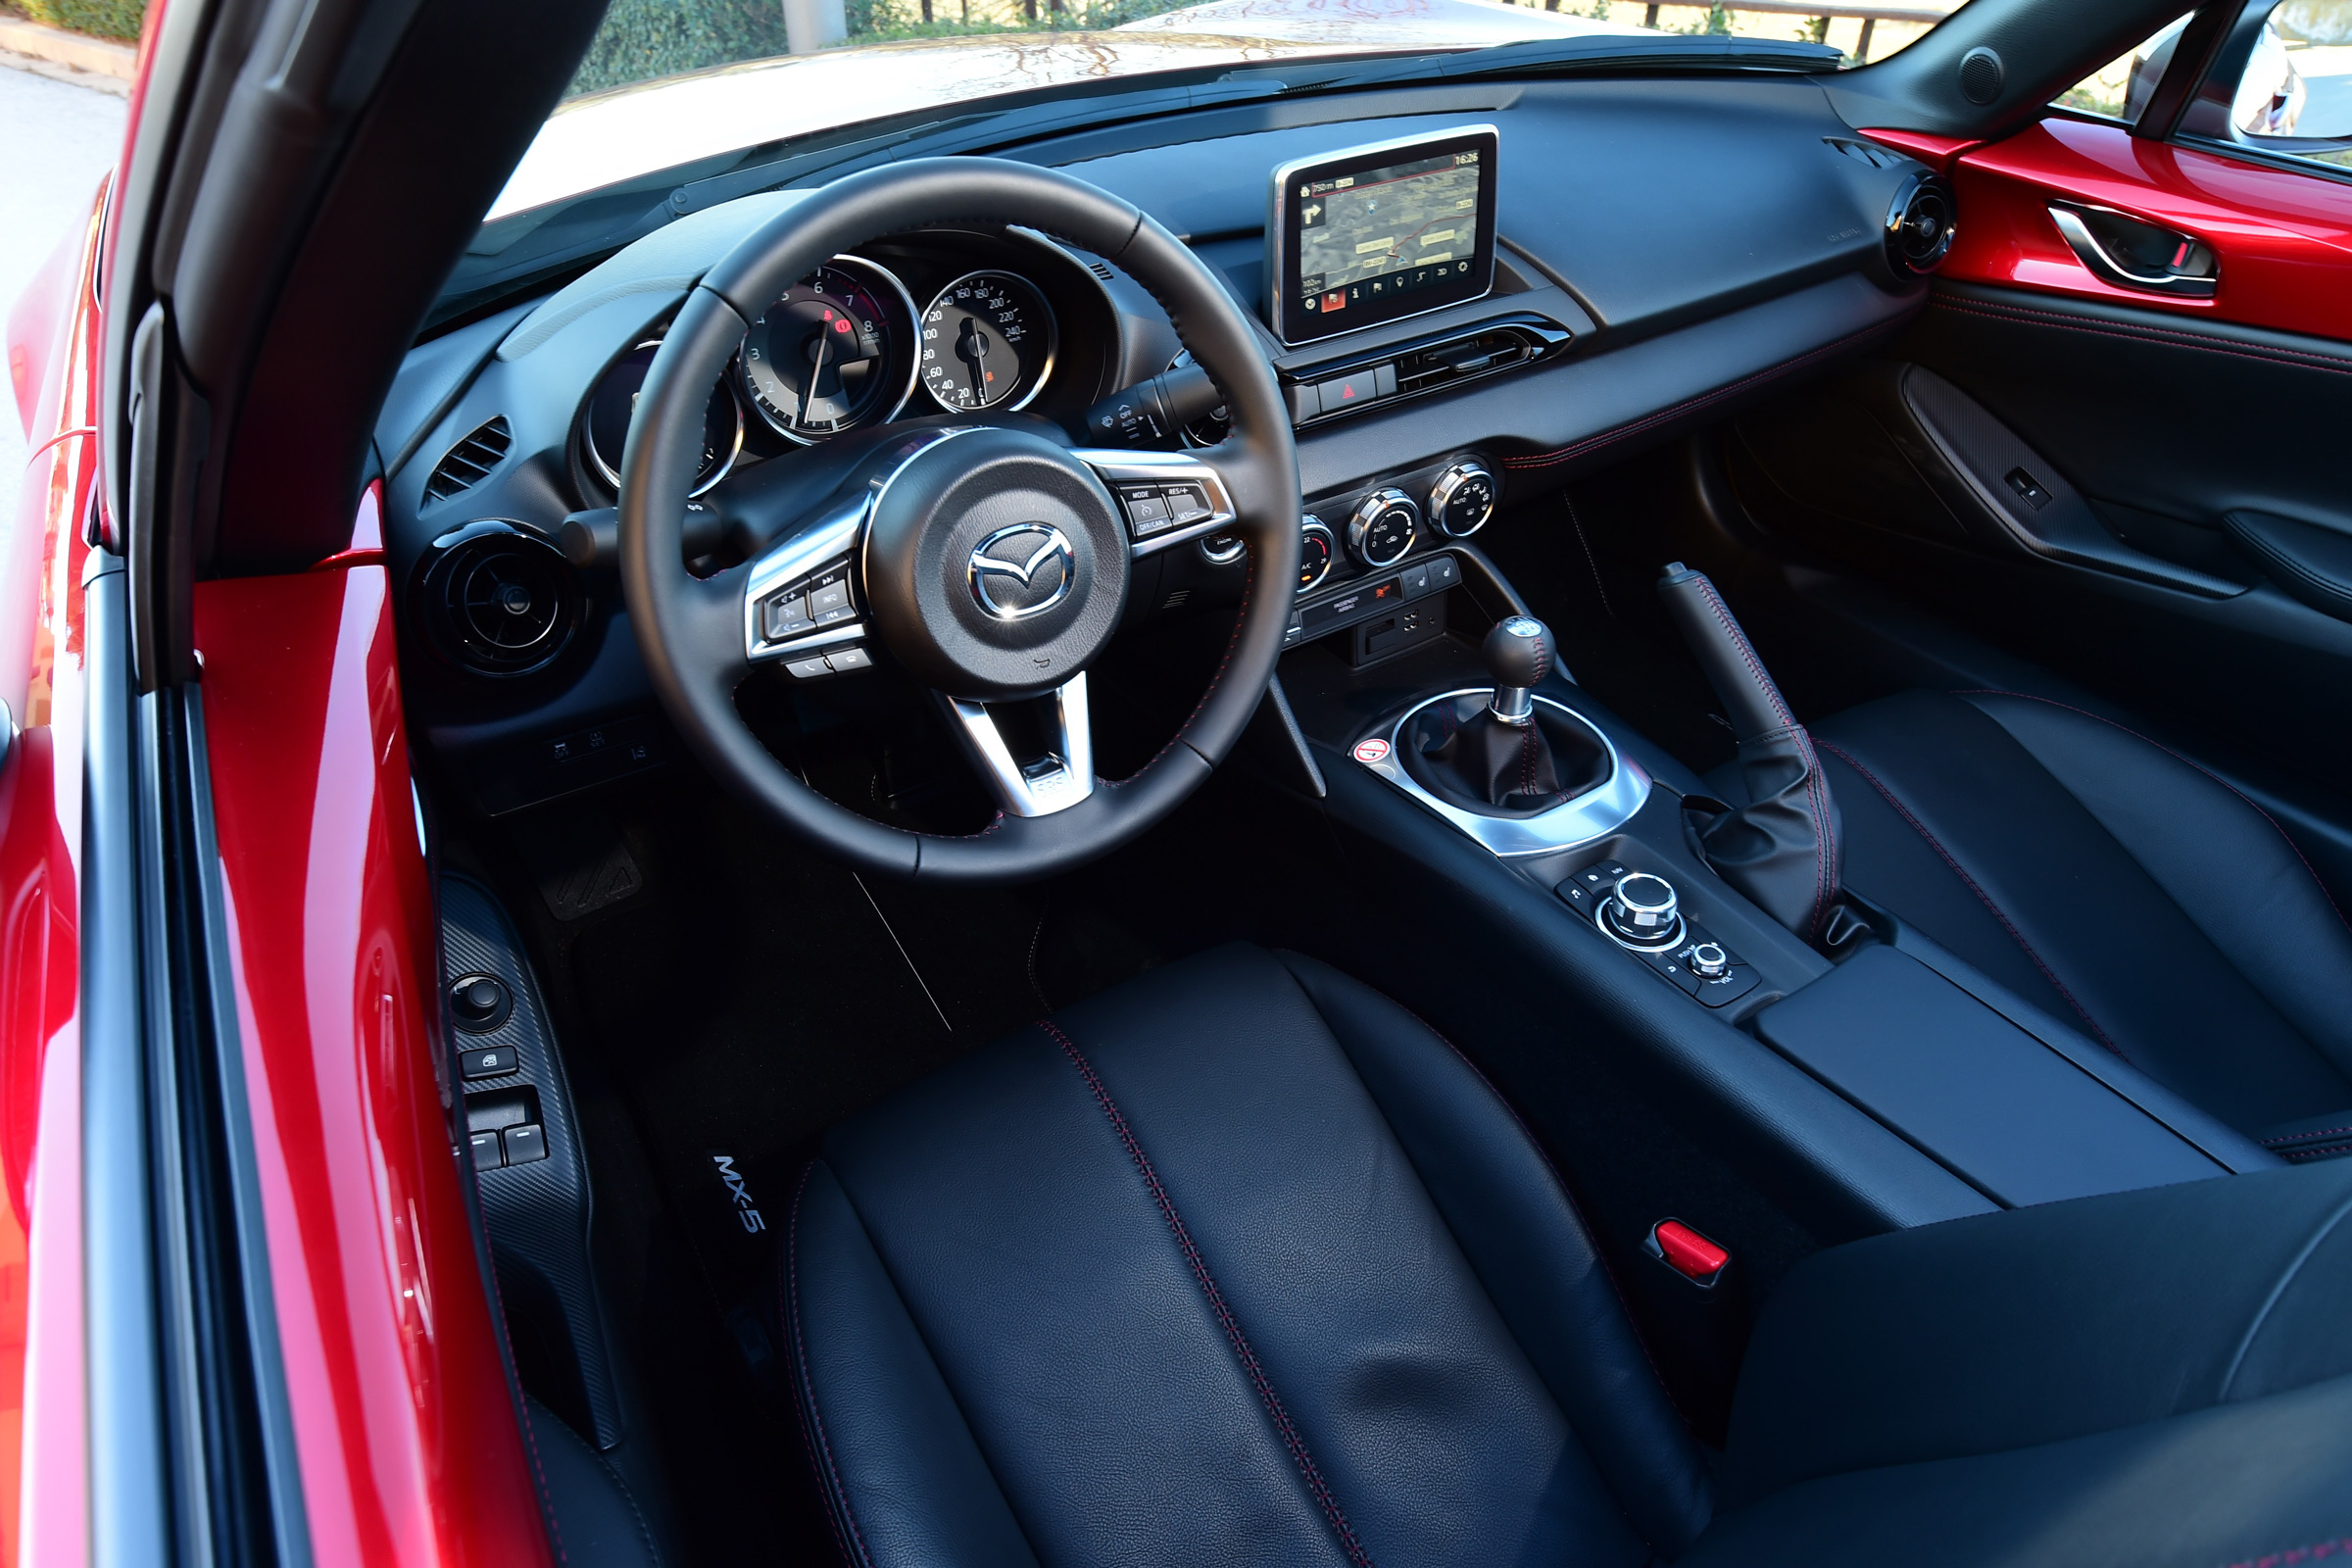 2017 Mazda MX 5 RF Interior Driver Cockpit Steering And Speedometer (Photo 9 of 20)